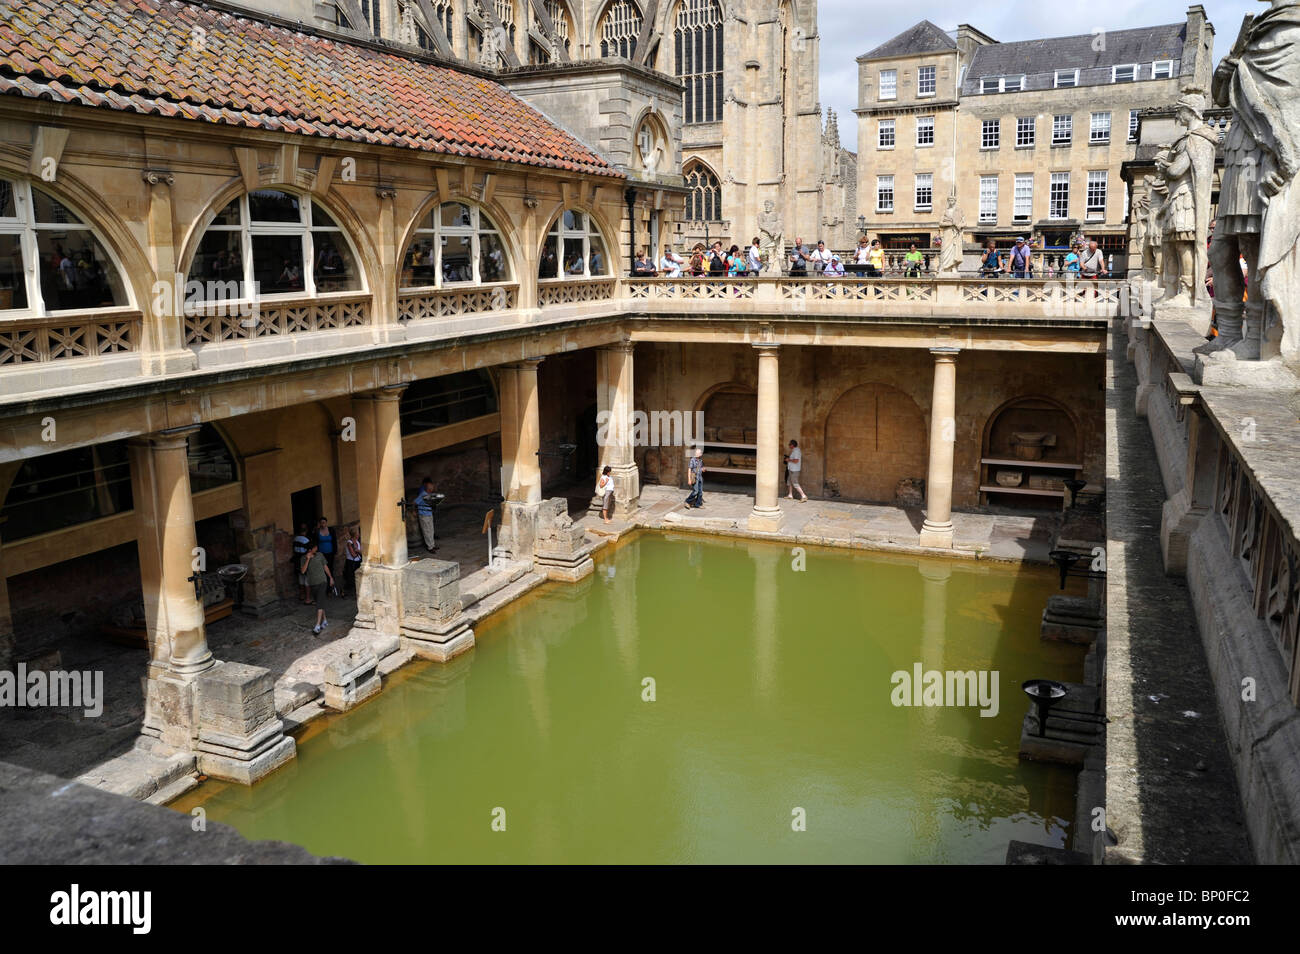 Roman Baths and Bath Abbey Church in the Background - Stock Image